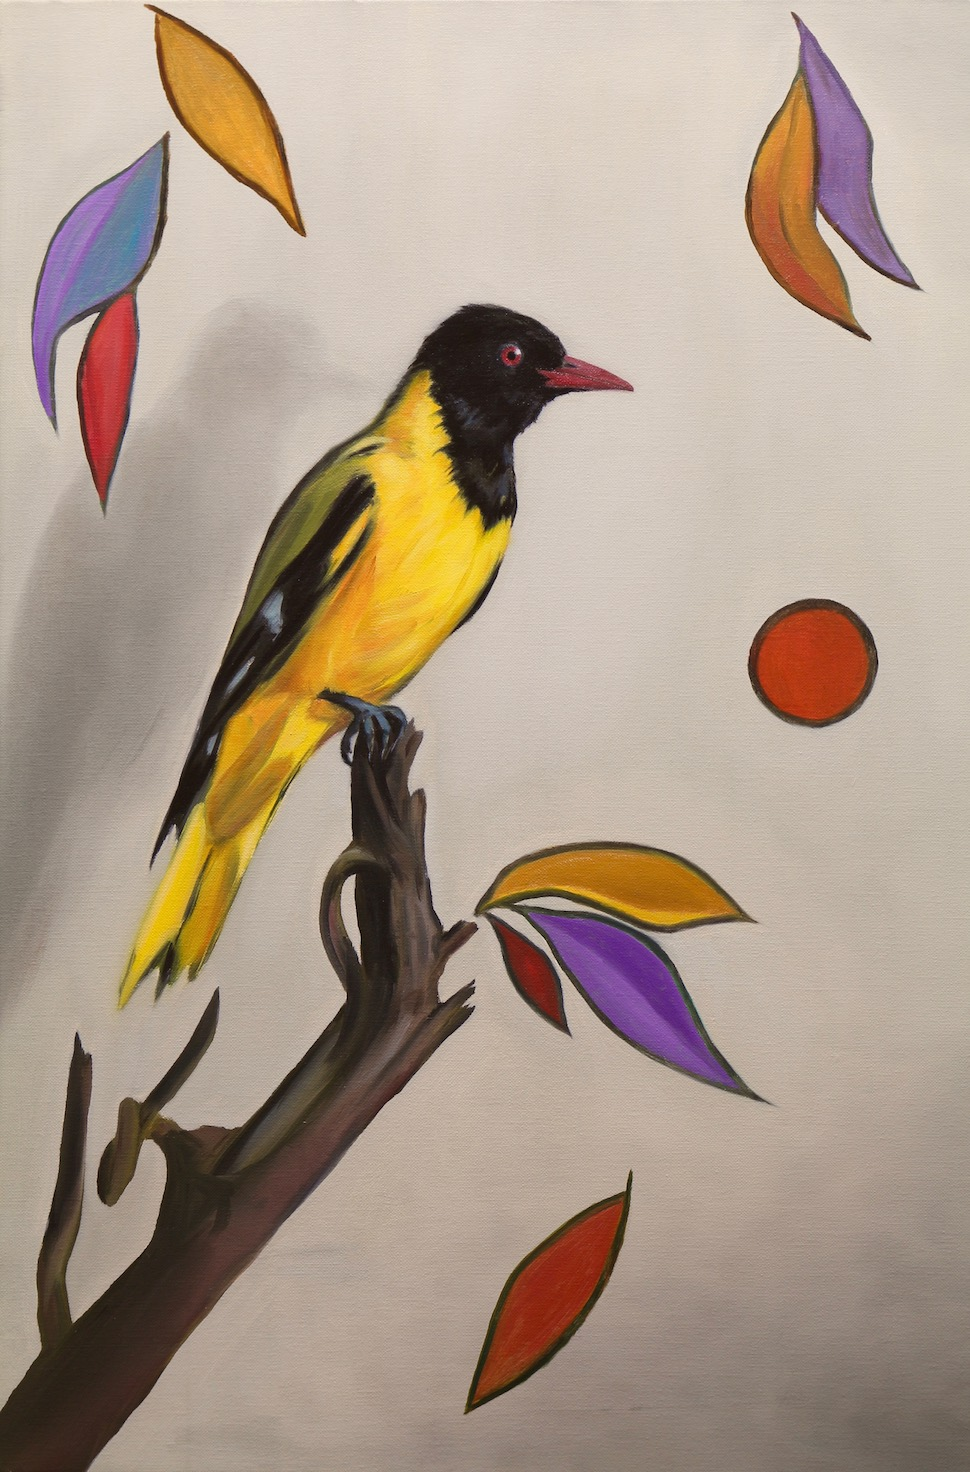 The Yellow Songbird, oil on linen, 60x40cm, 2018